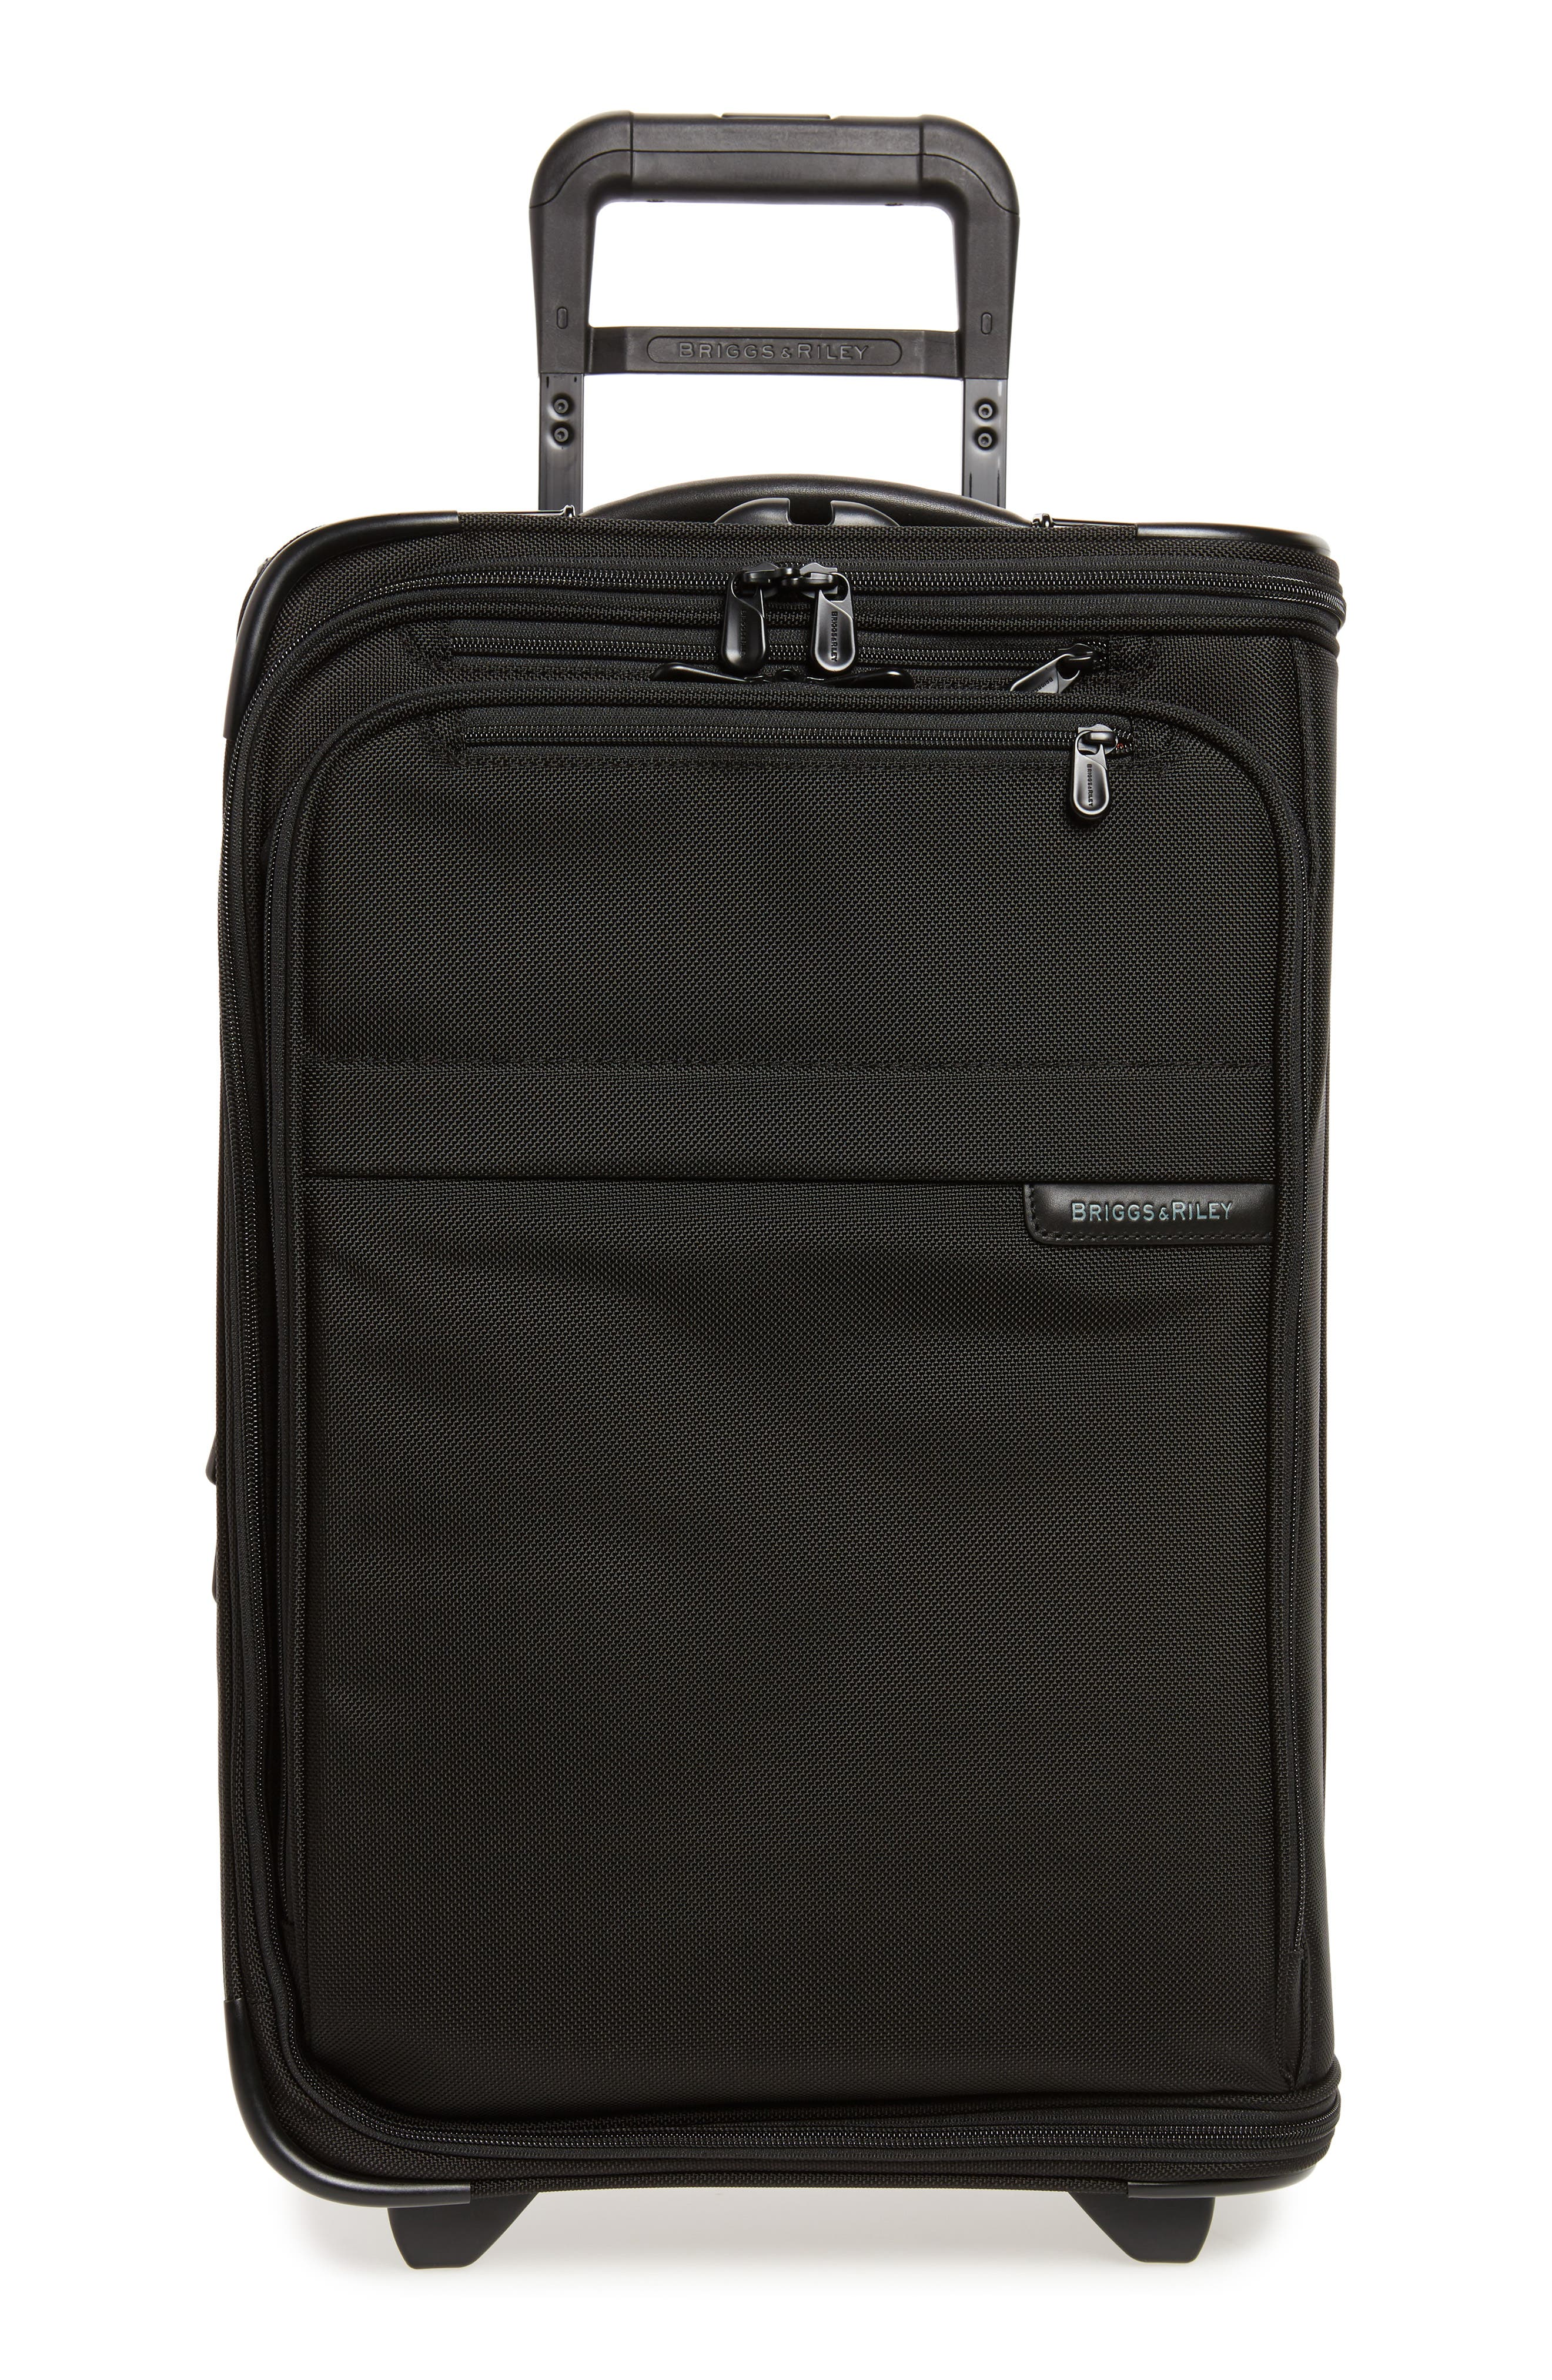 'Baseline - Domestic' Rolling Carry-On Garment Bag,                             Main thumbnail 1, color,                             BLACK